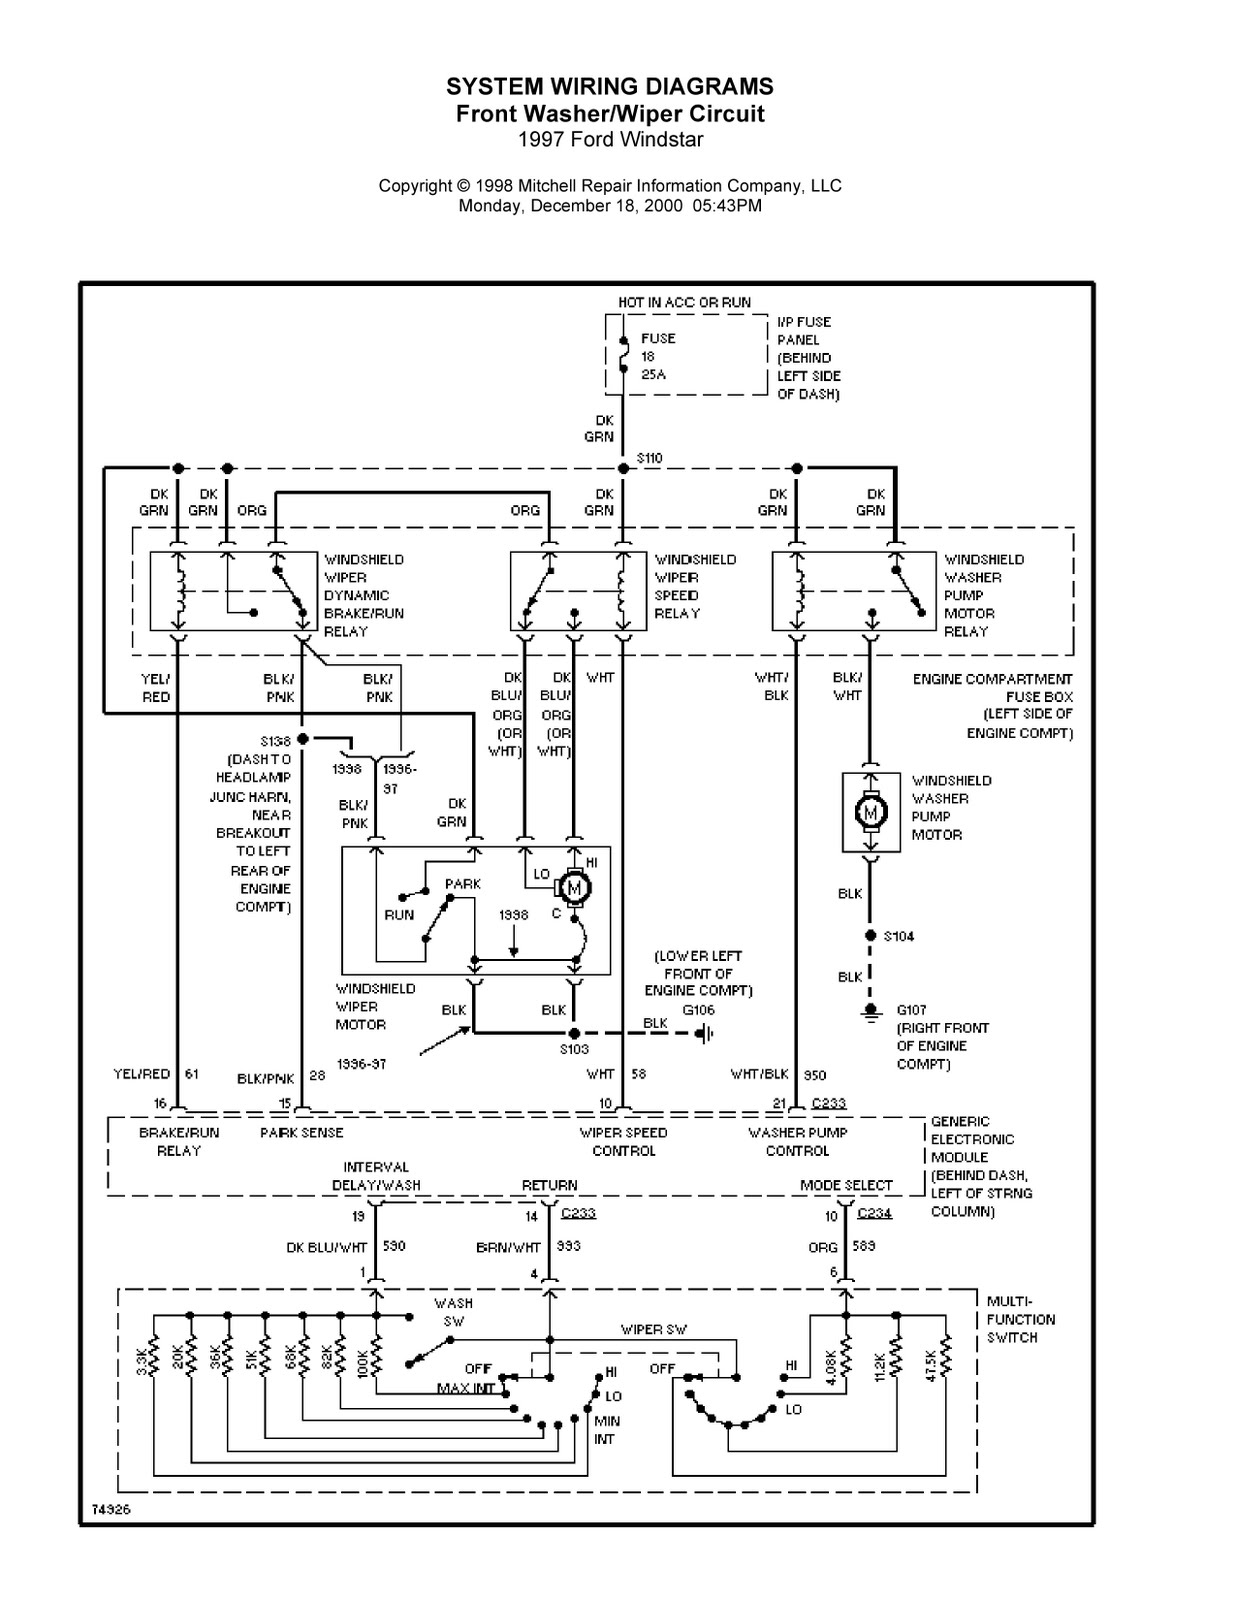 2002 ford windstar engine diagram 2 cycle carburetor wiring for fuse box get free image